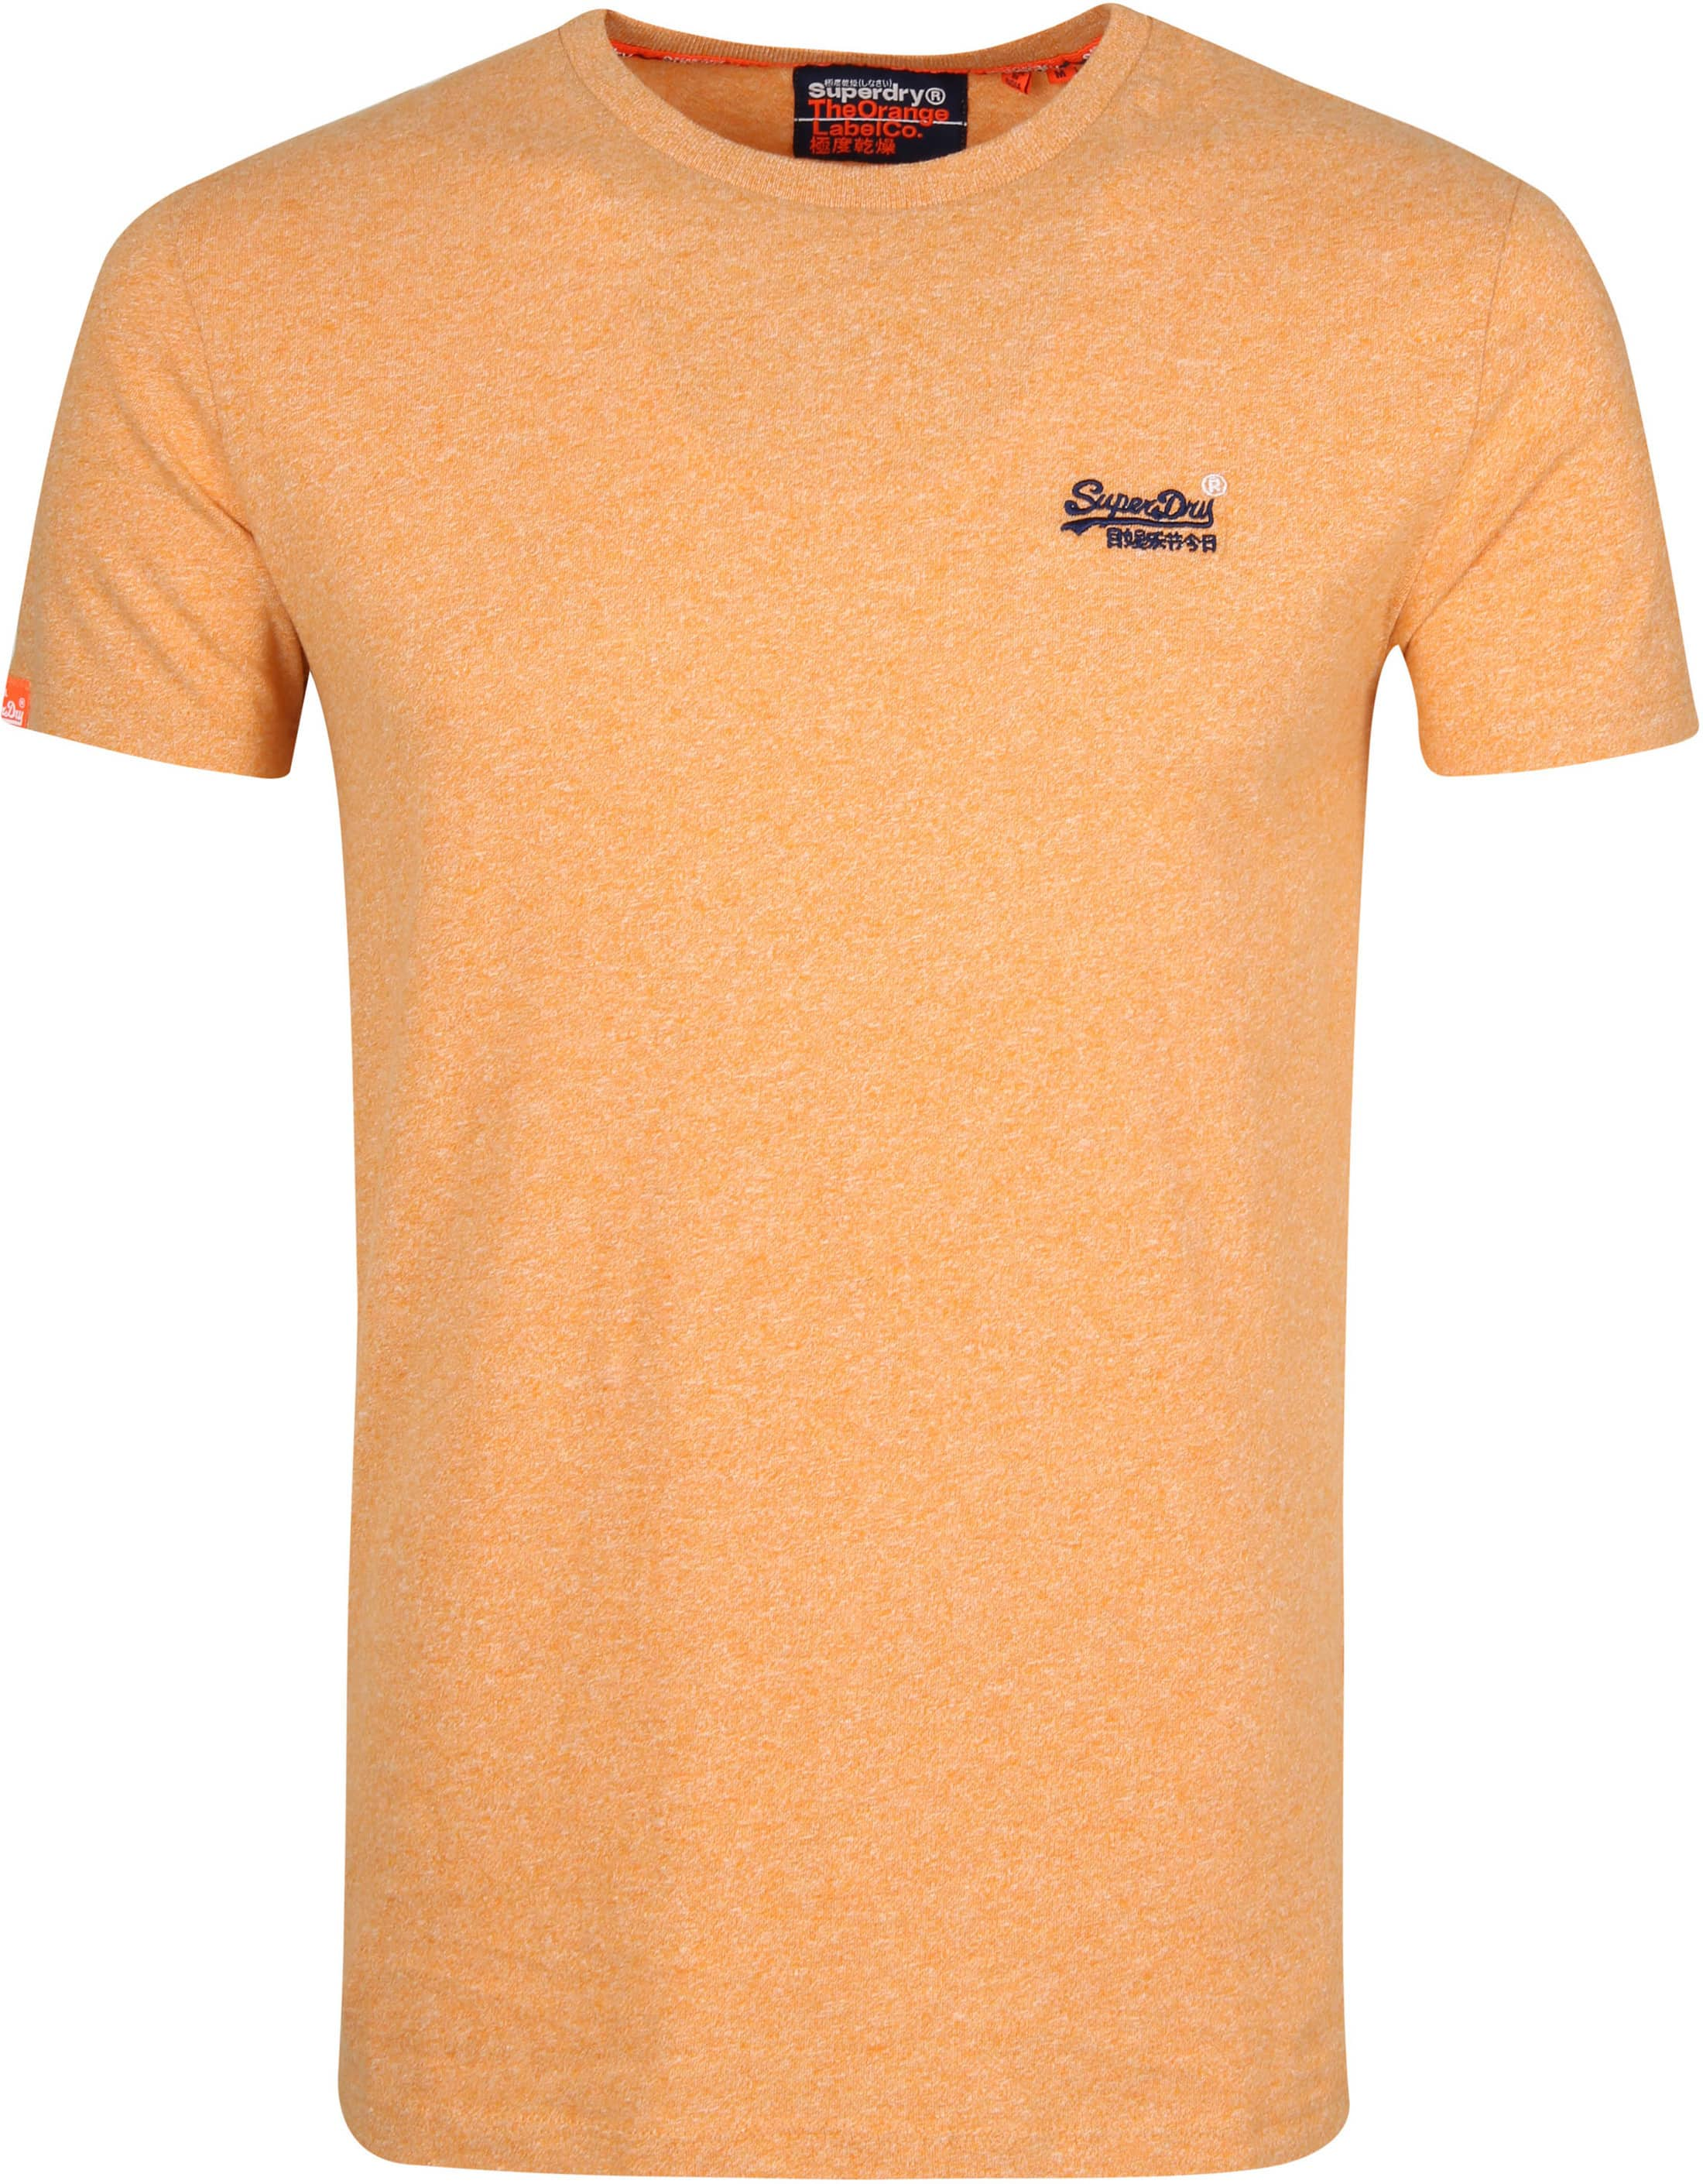 Superdry T Shirt Embroidery Oranje